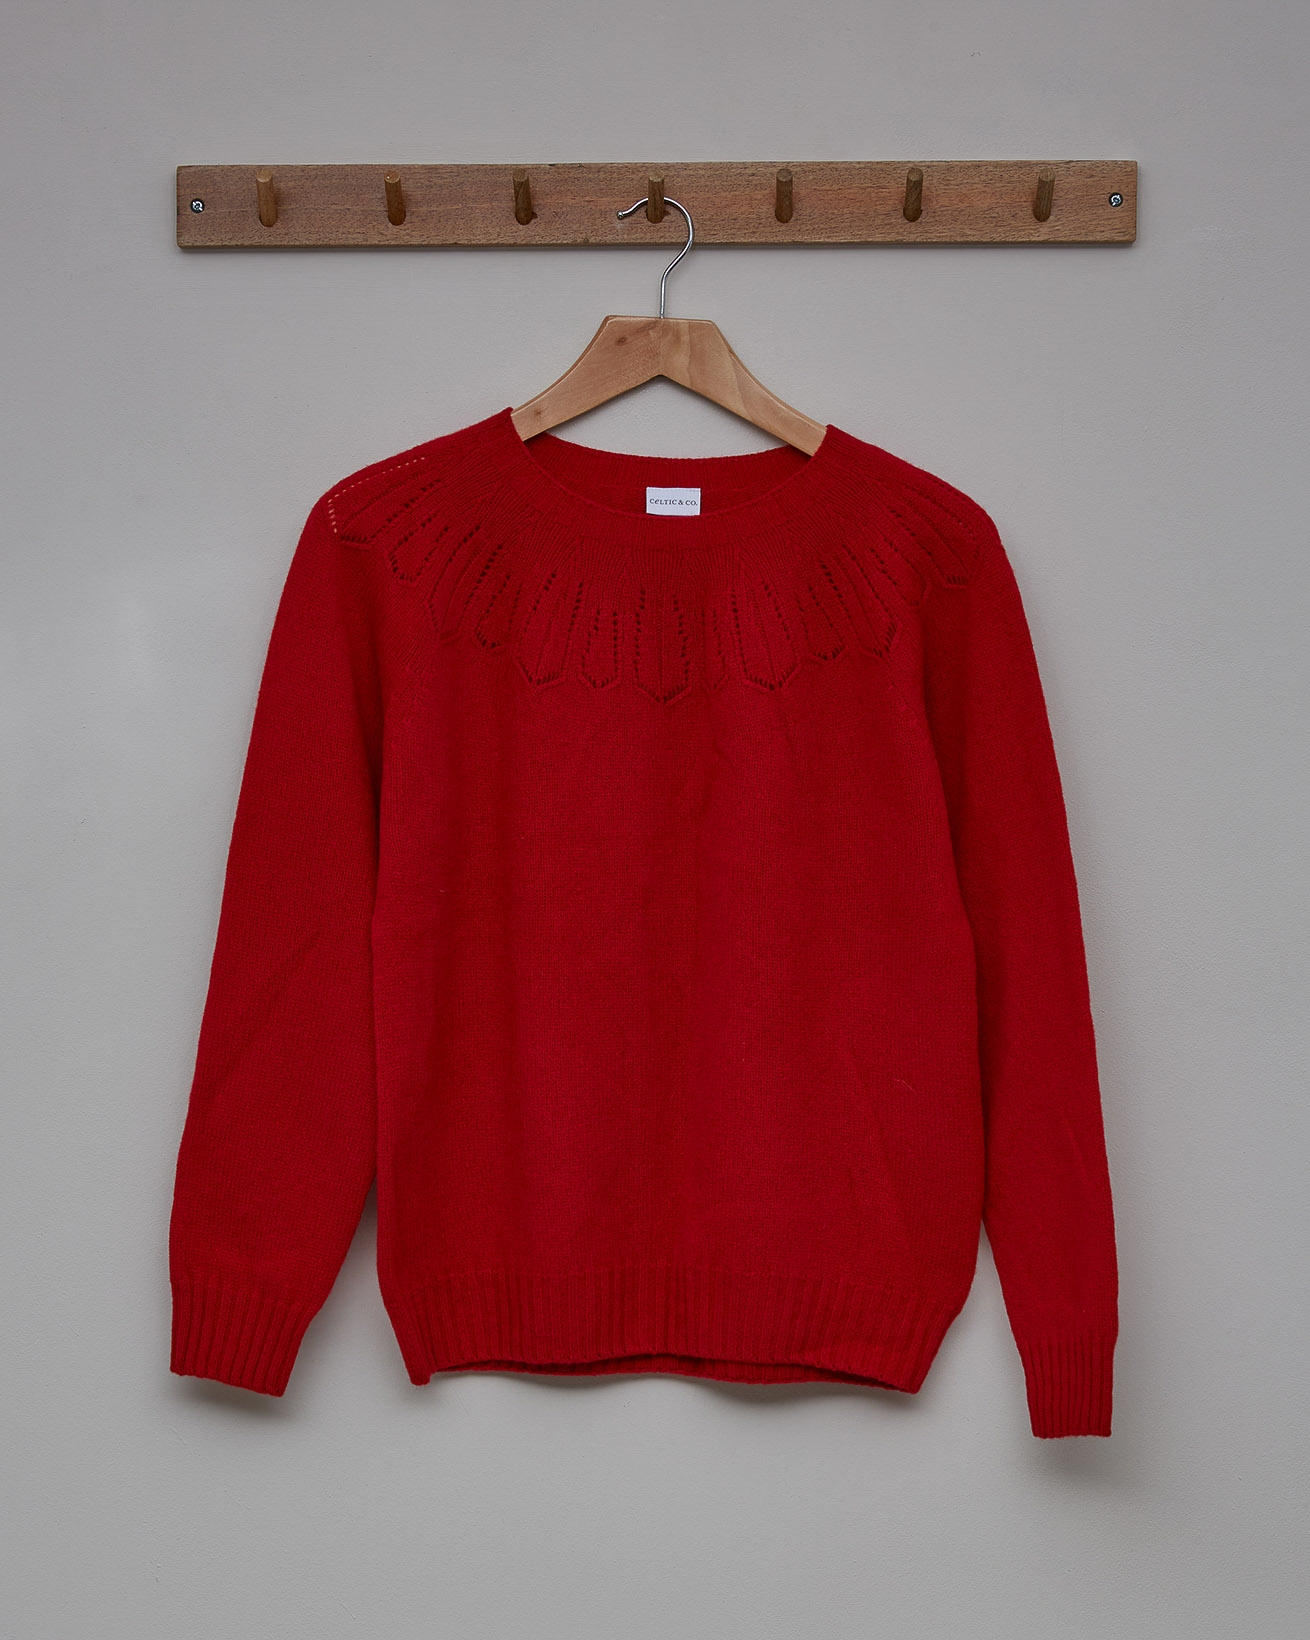 Merino Cashmere Lace Yoke Detail Jumper - Size Small - Pillarbox Red - 2361